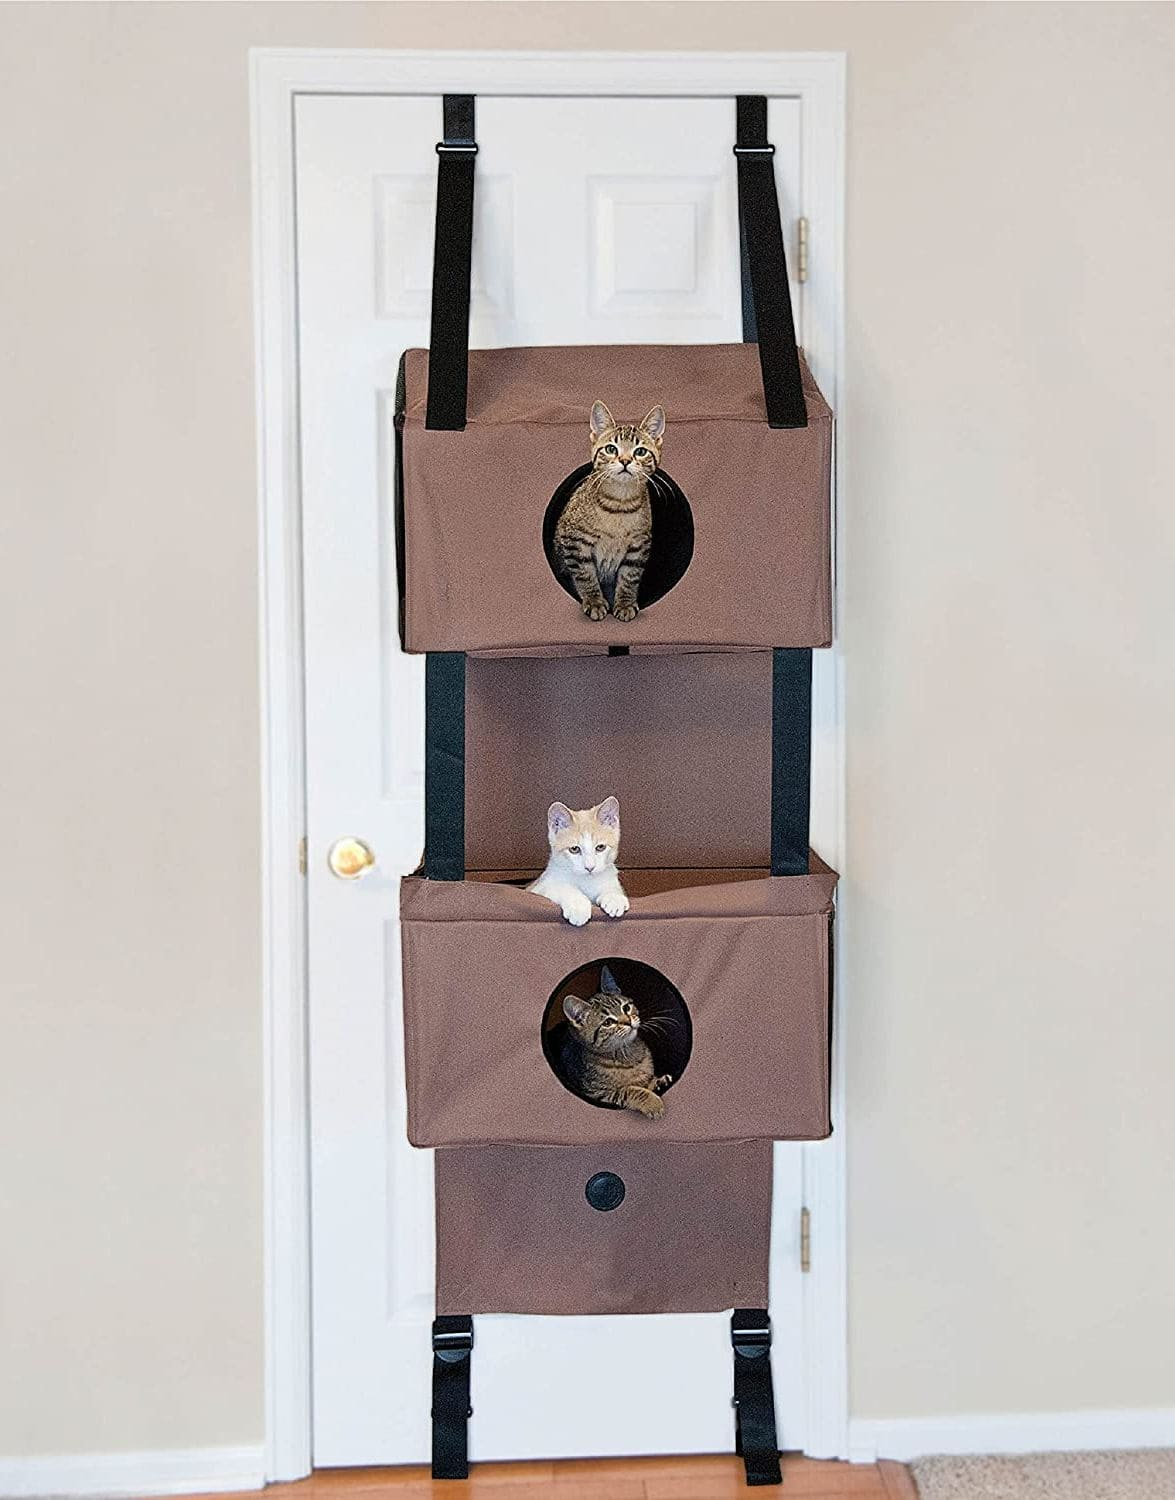 pet furniture 7 - 18 amazing pet furniture ideas that are perfect solutions for small spaces